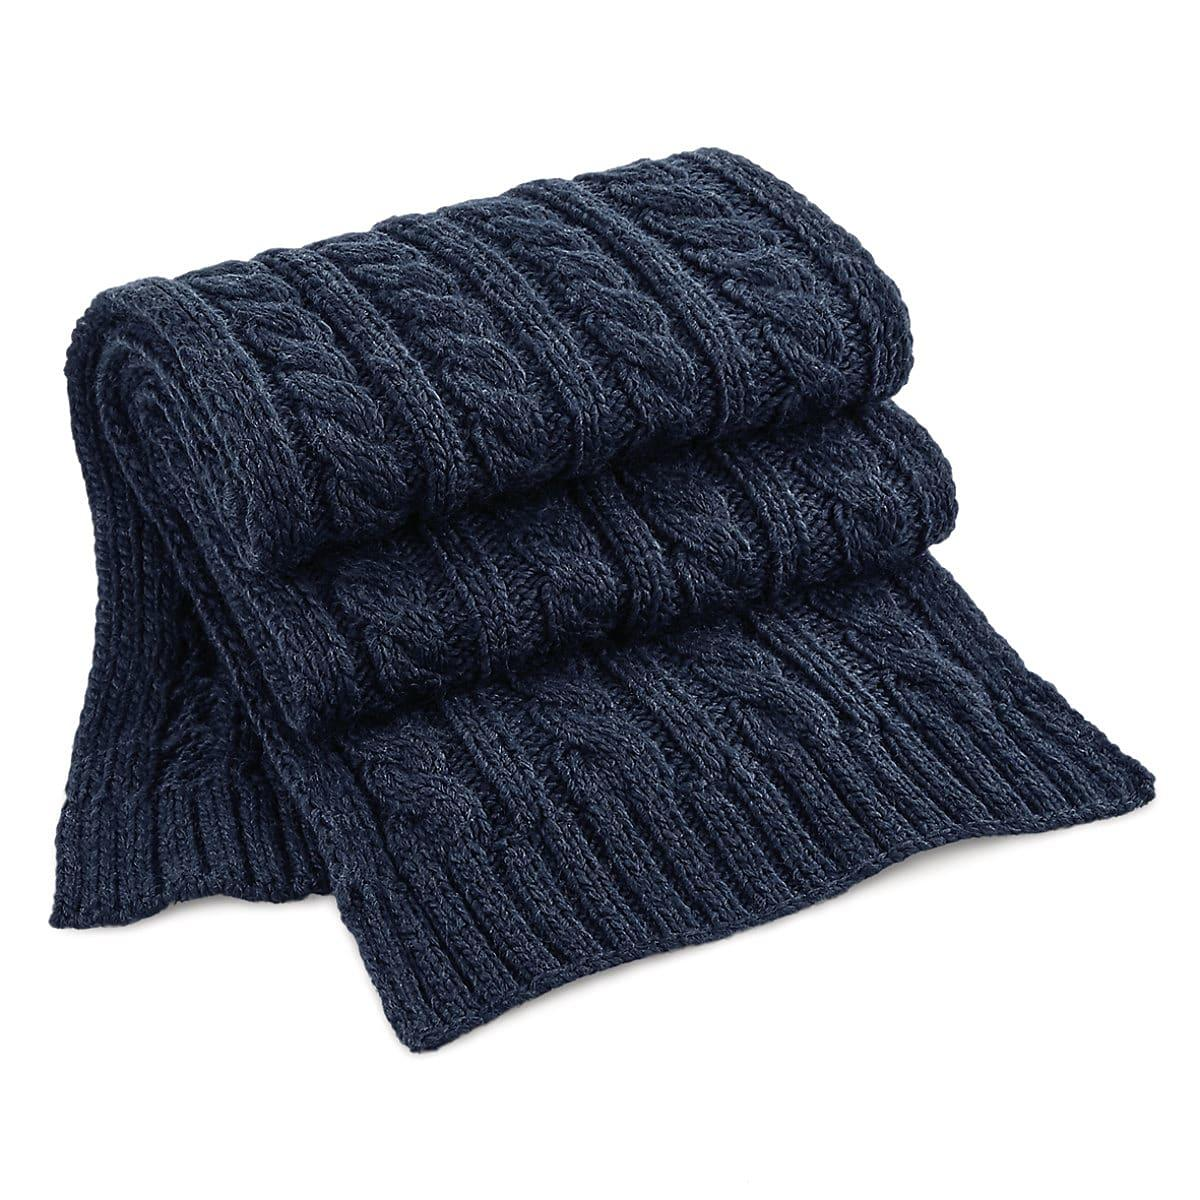 Beechfield Cable Knit Melange Scarf in Navy Blue (Product Code: B499)